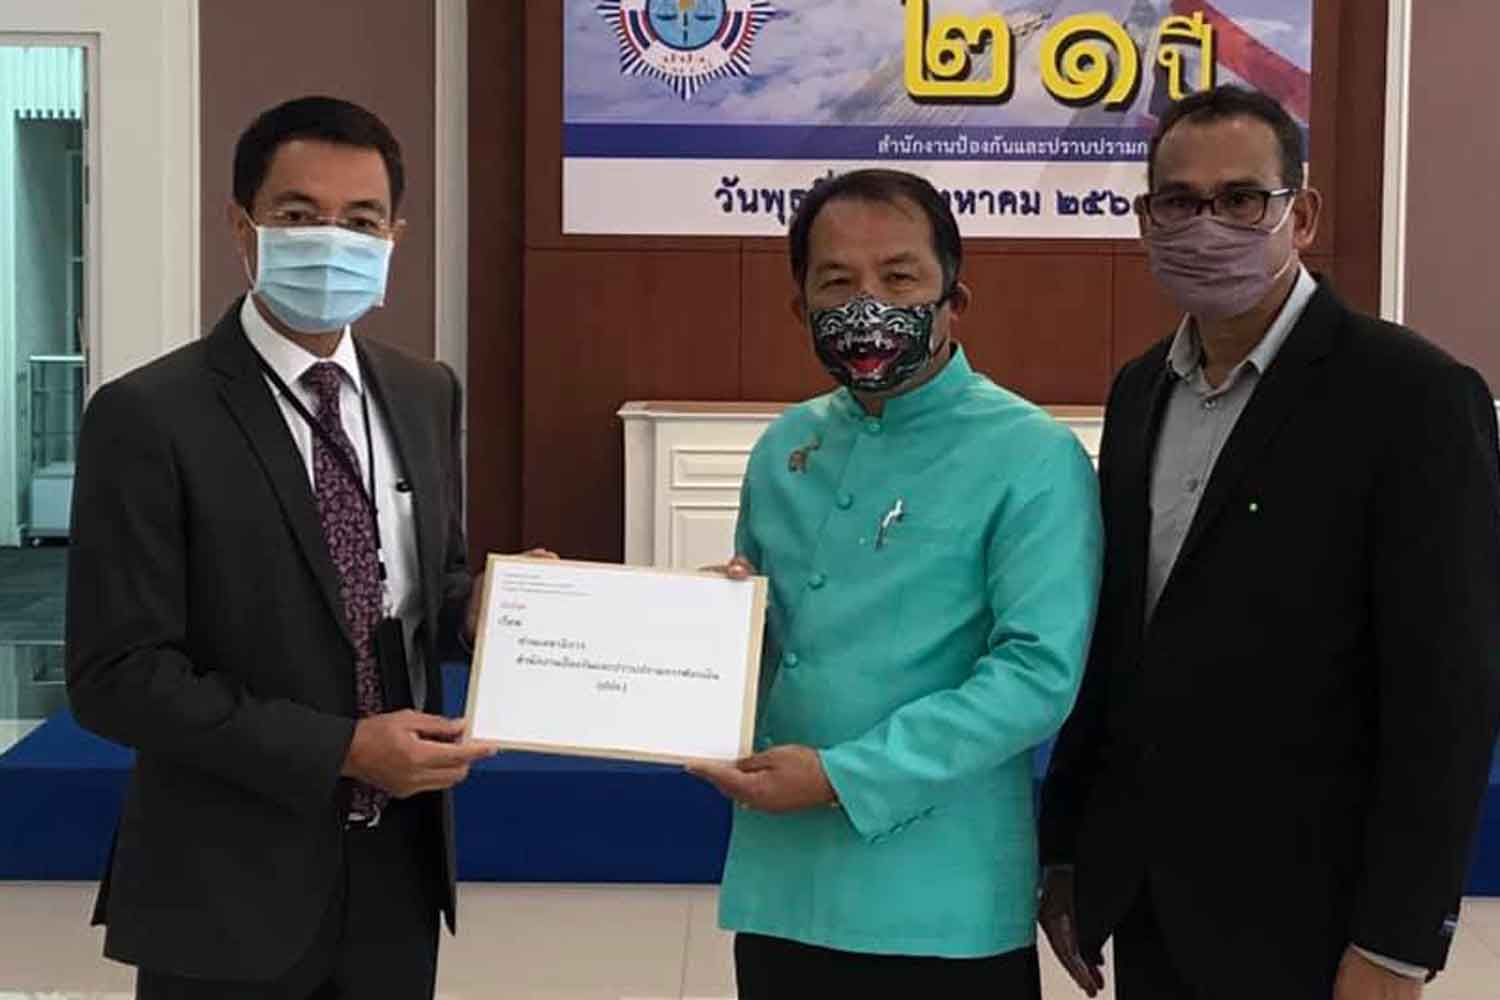 Srisuwan Janya, centre, submits his petition to an official at the Anti-Money Laundering Office on Wednesday. (Photo: Srisuwan's Facebook page)